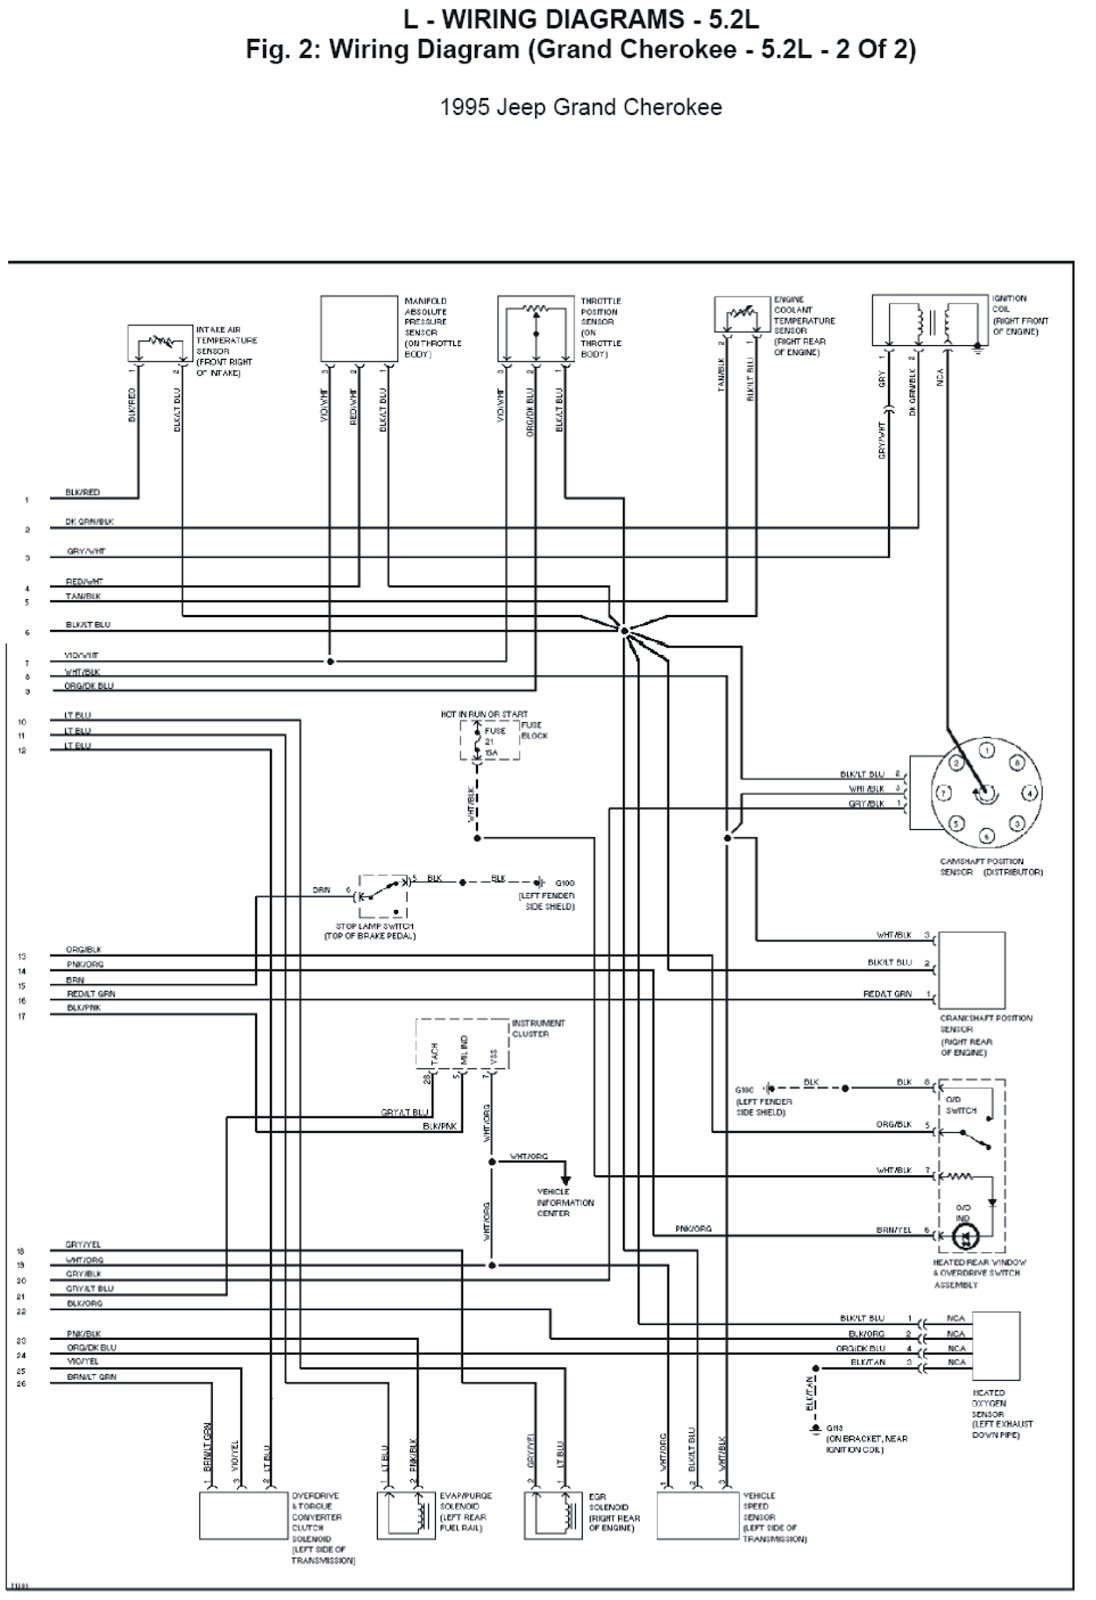 hight resolution of 1997 grand cherokee trailer wiring diagram 1990 jeep cherokee laredo wiring diagramrh svlc